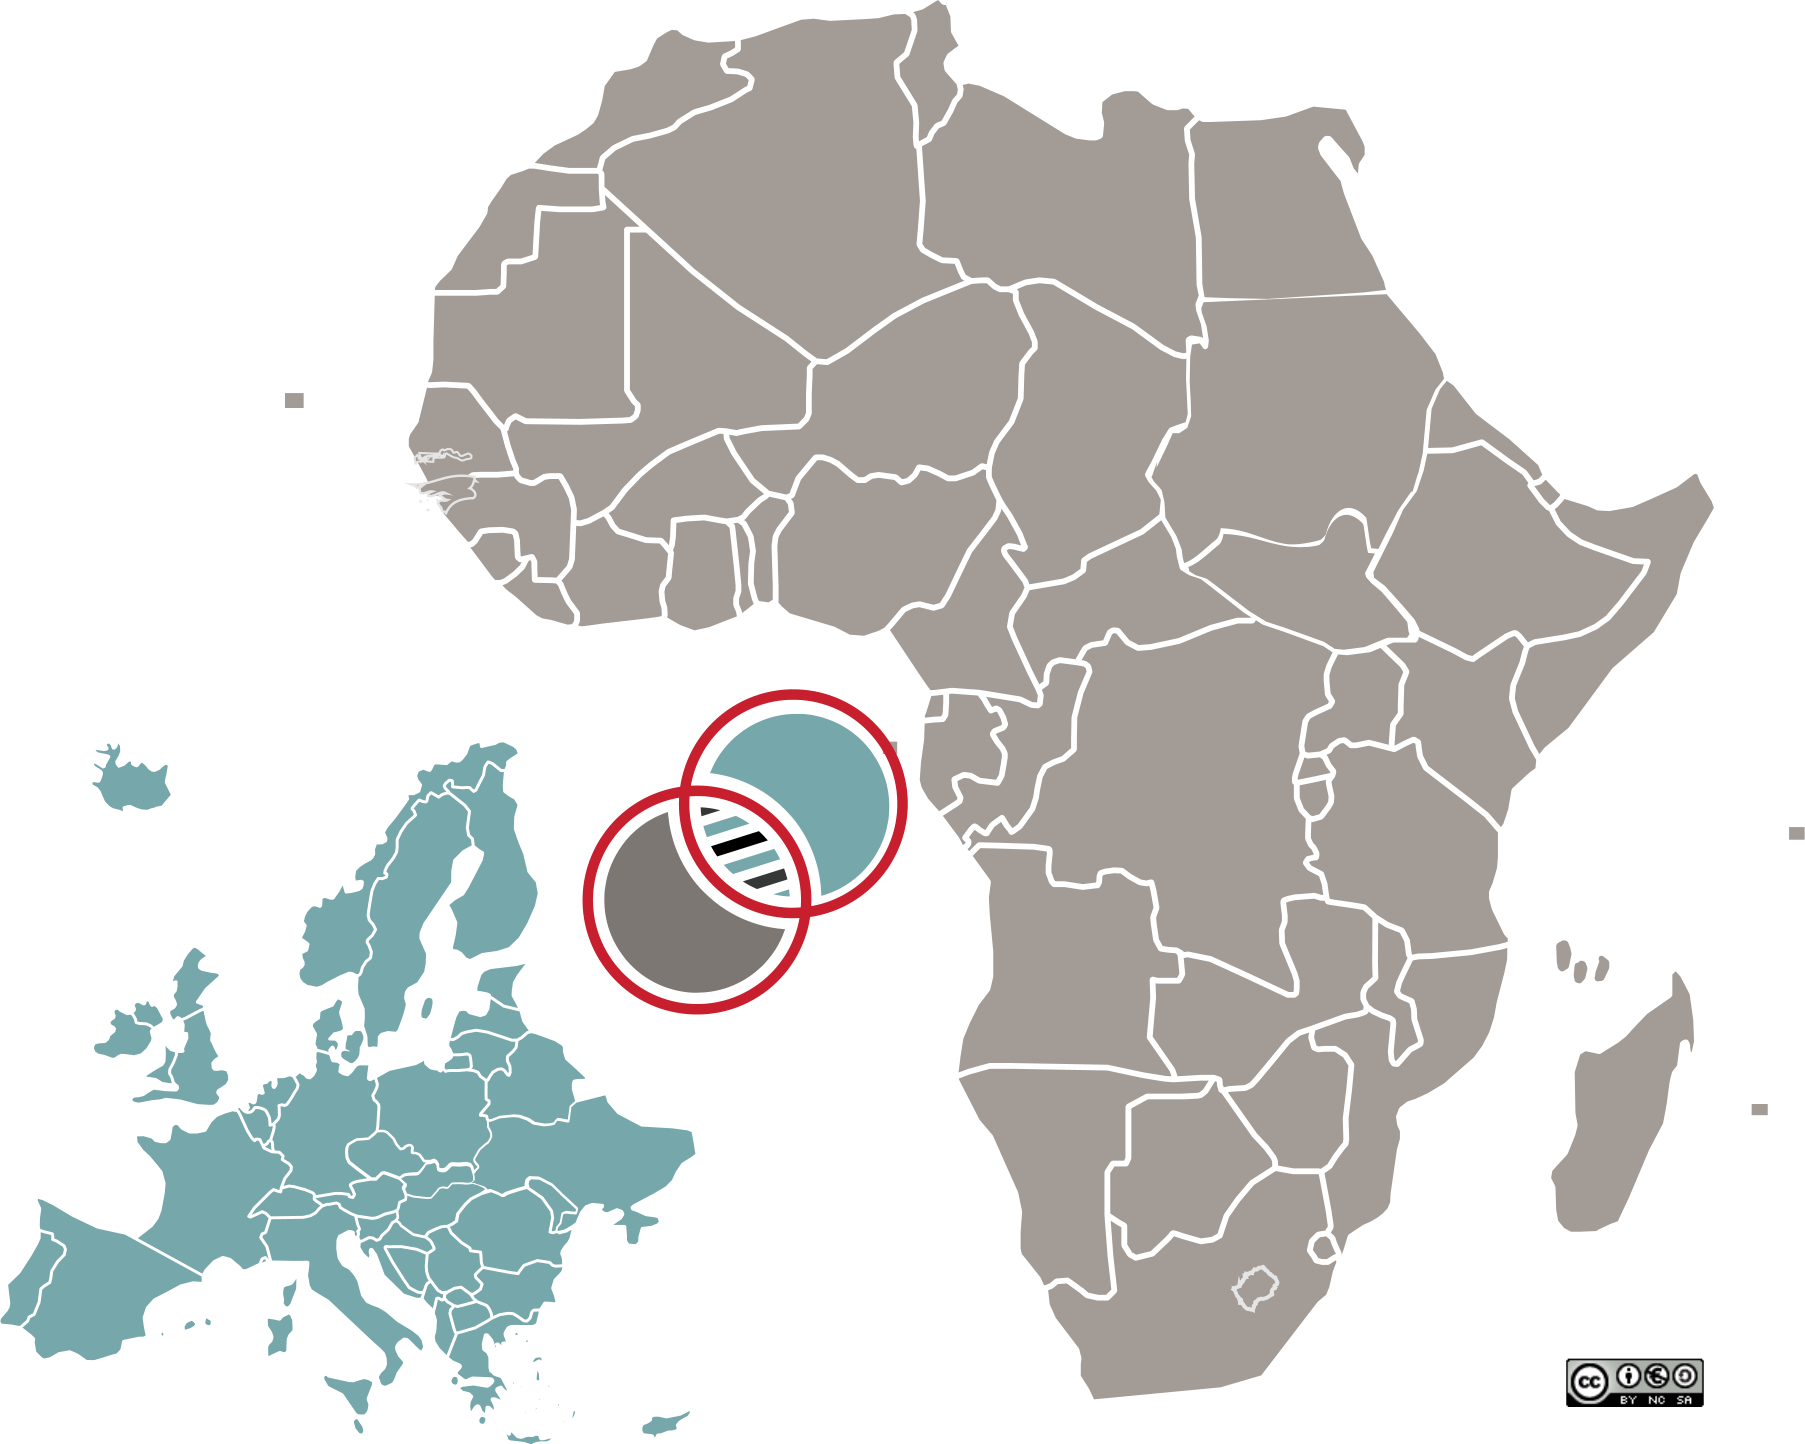 Africa. Europe